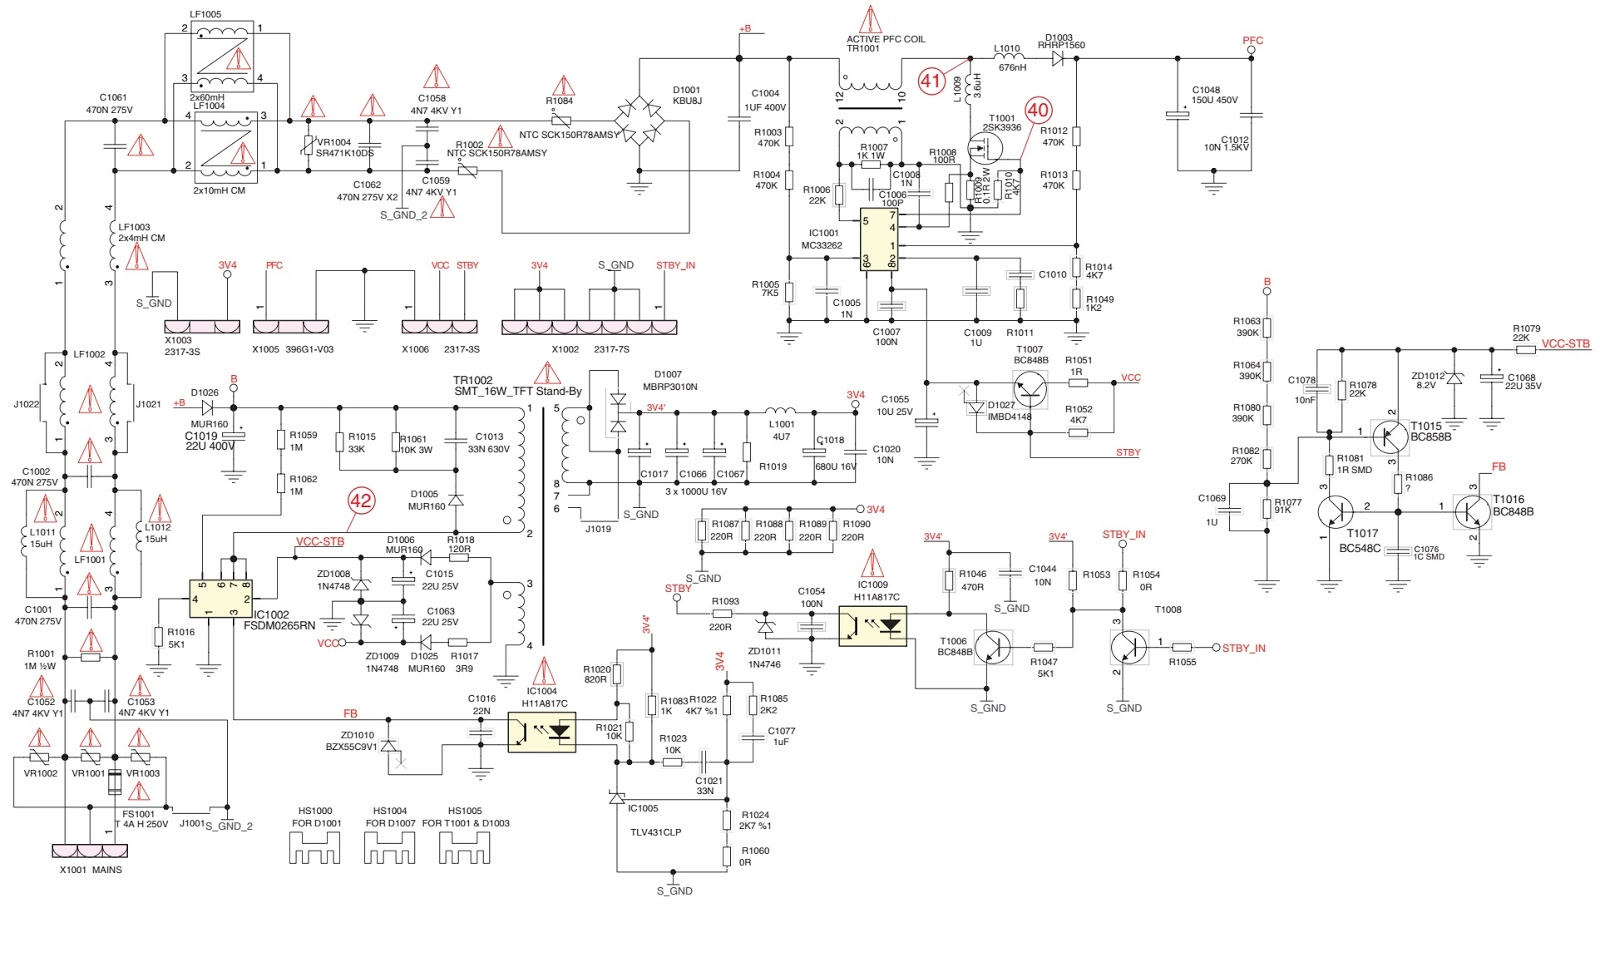 hight resolution of grundig lcd tv smps schematics circuit diagrams electronic besides live sound system setup diagram on tv schematic block diagram